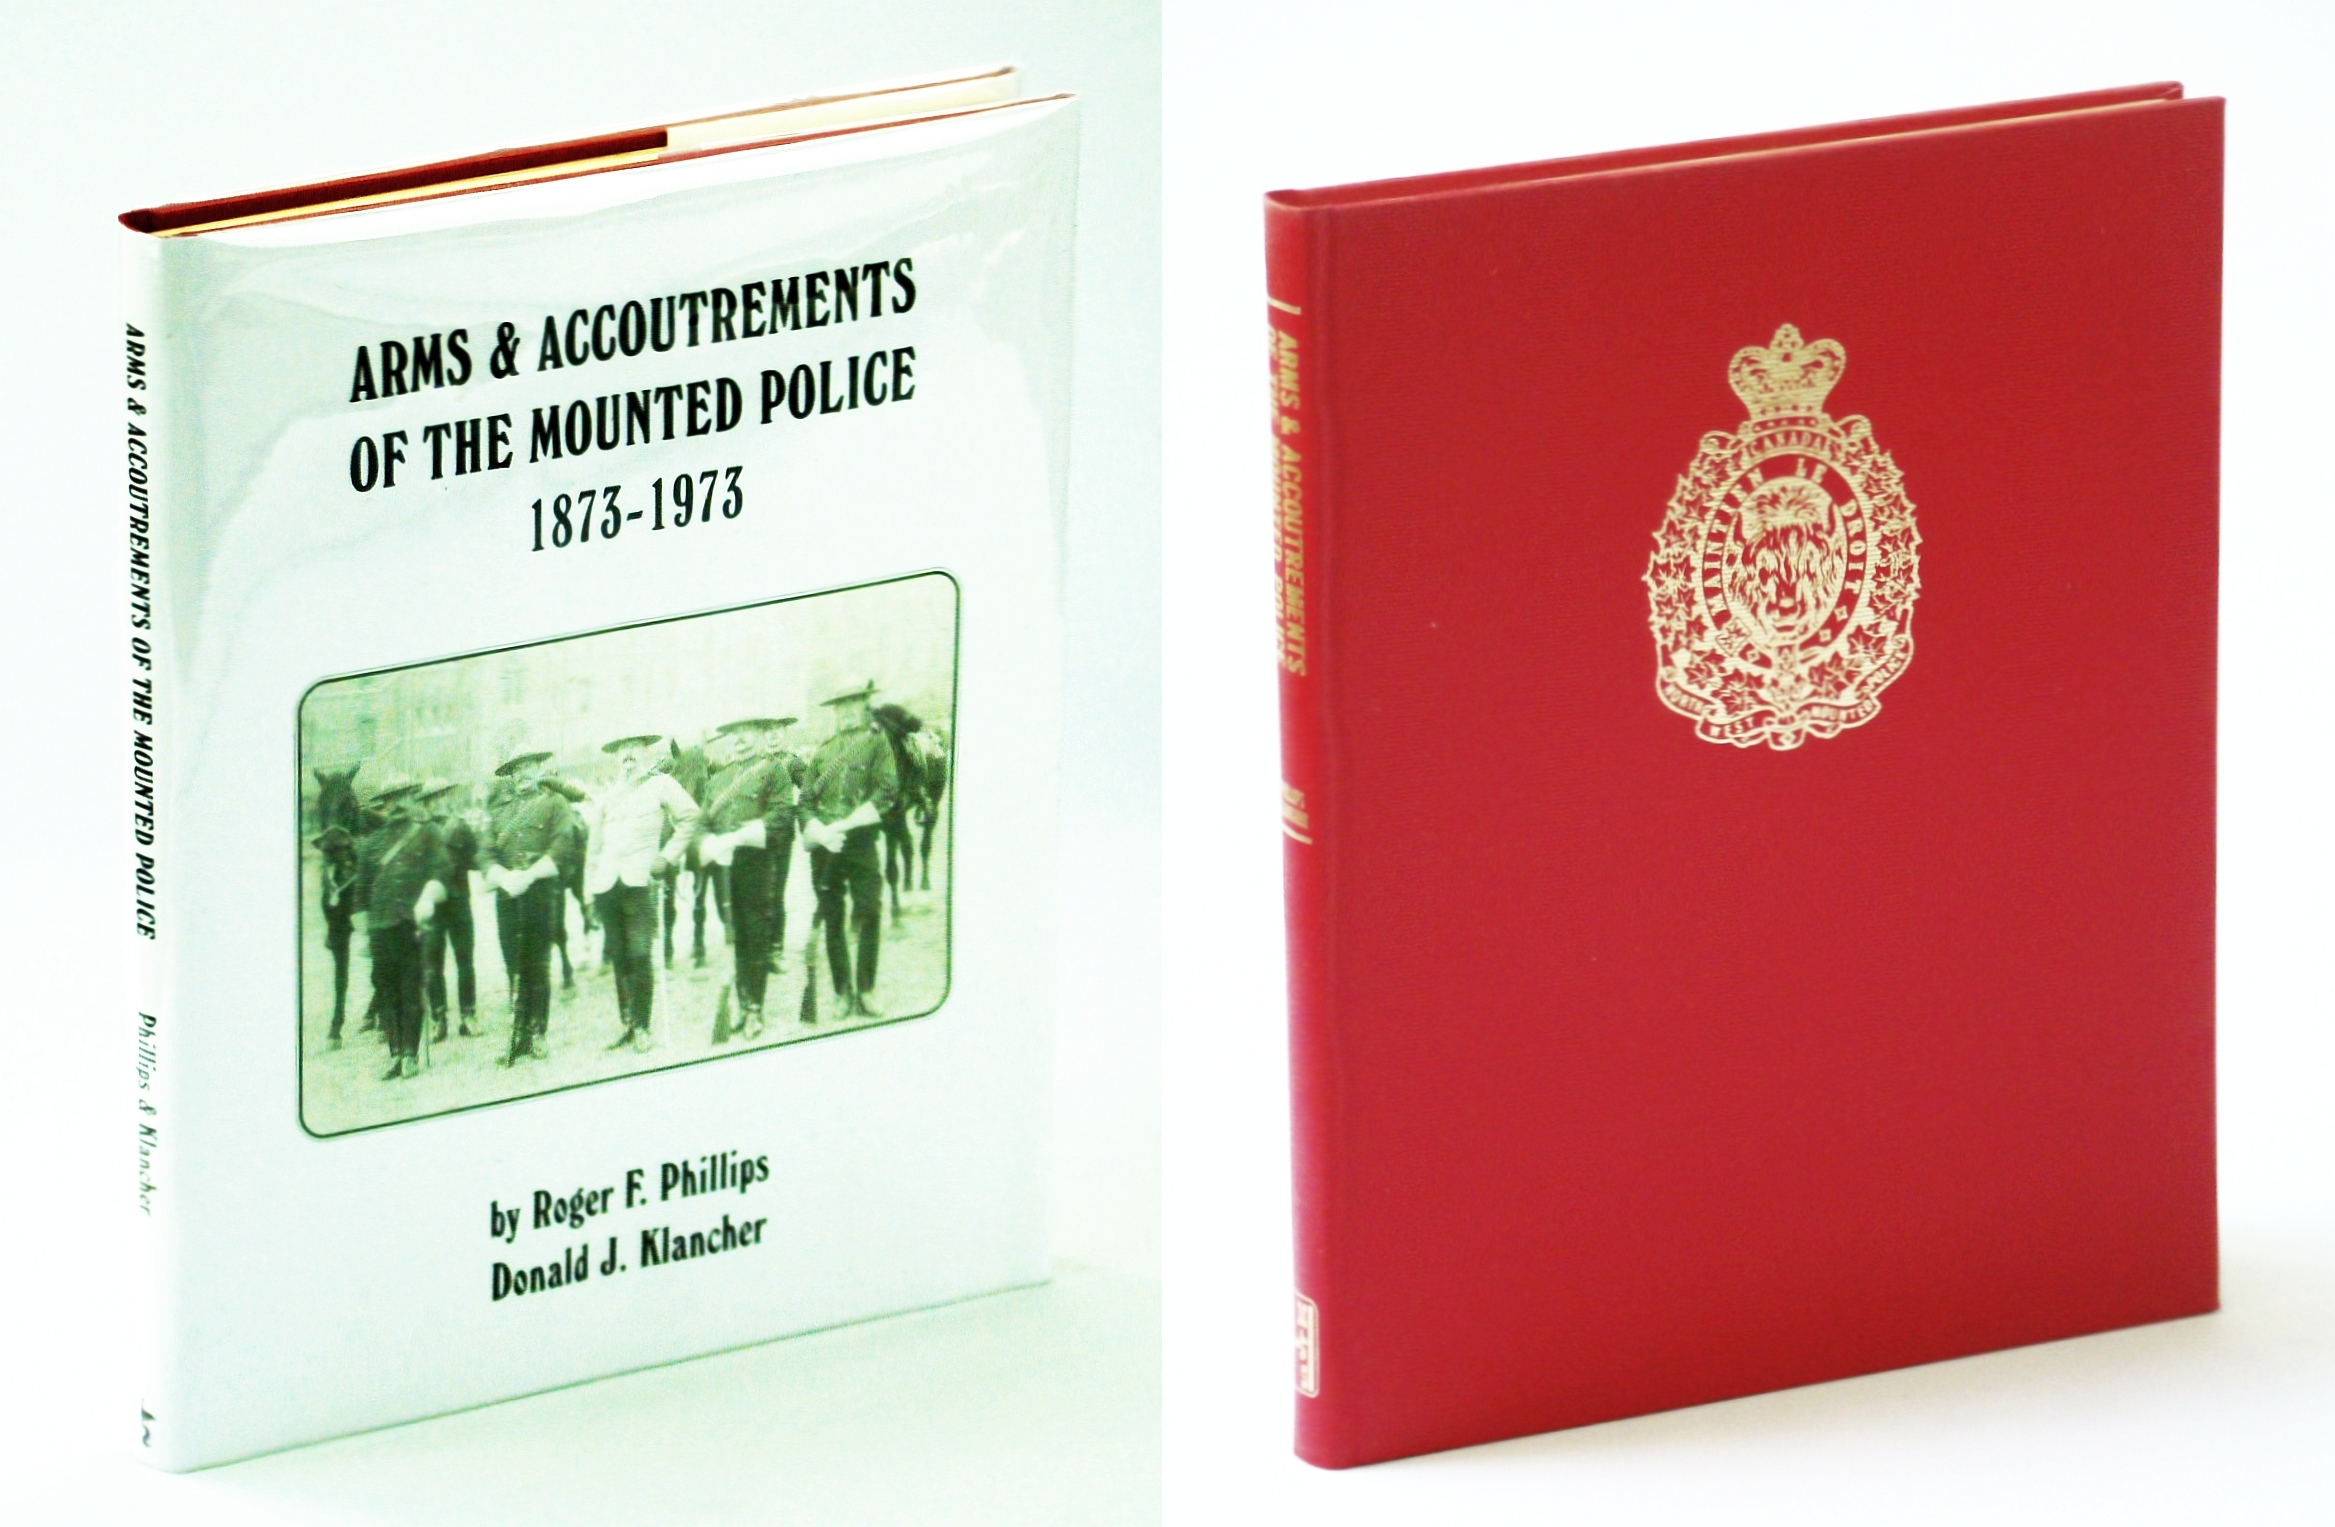 Image for Arms & accoutrements of the Mounted Police, 1873-1973: The first one hundred years